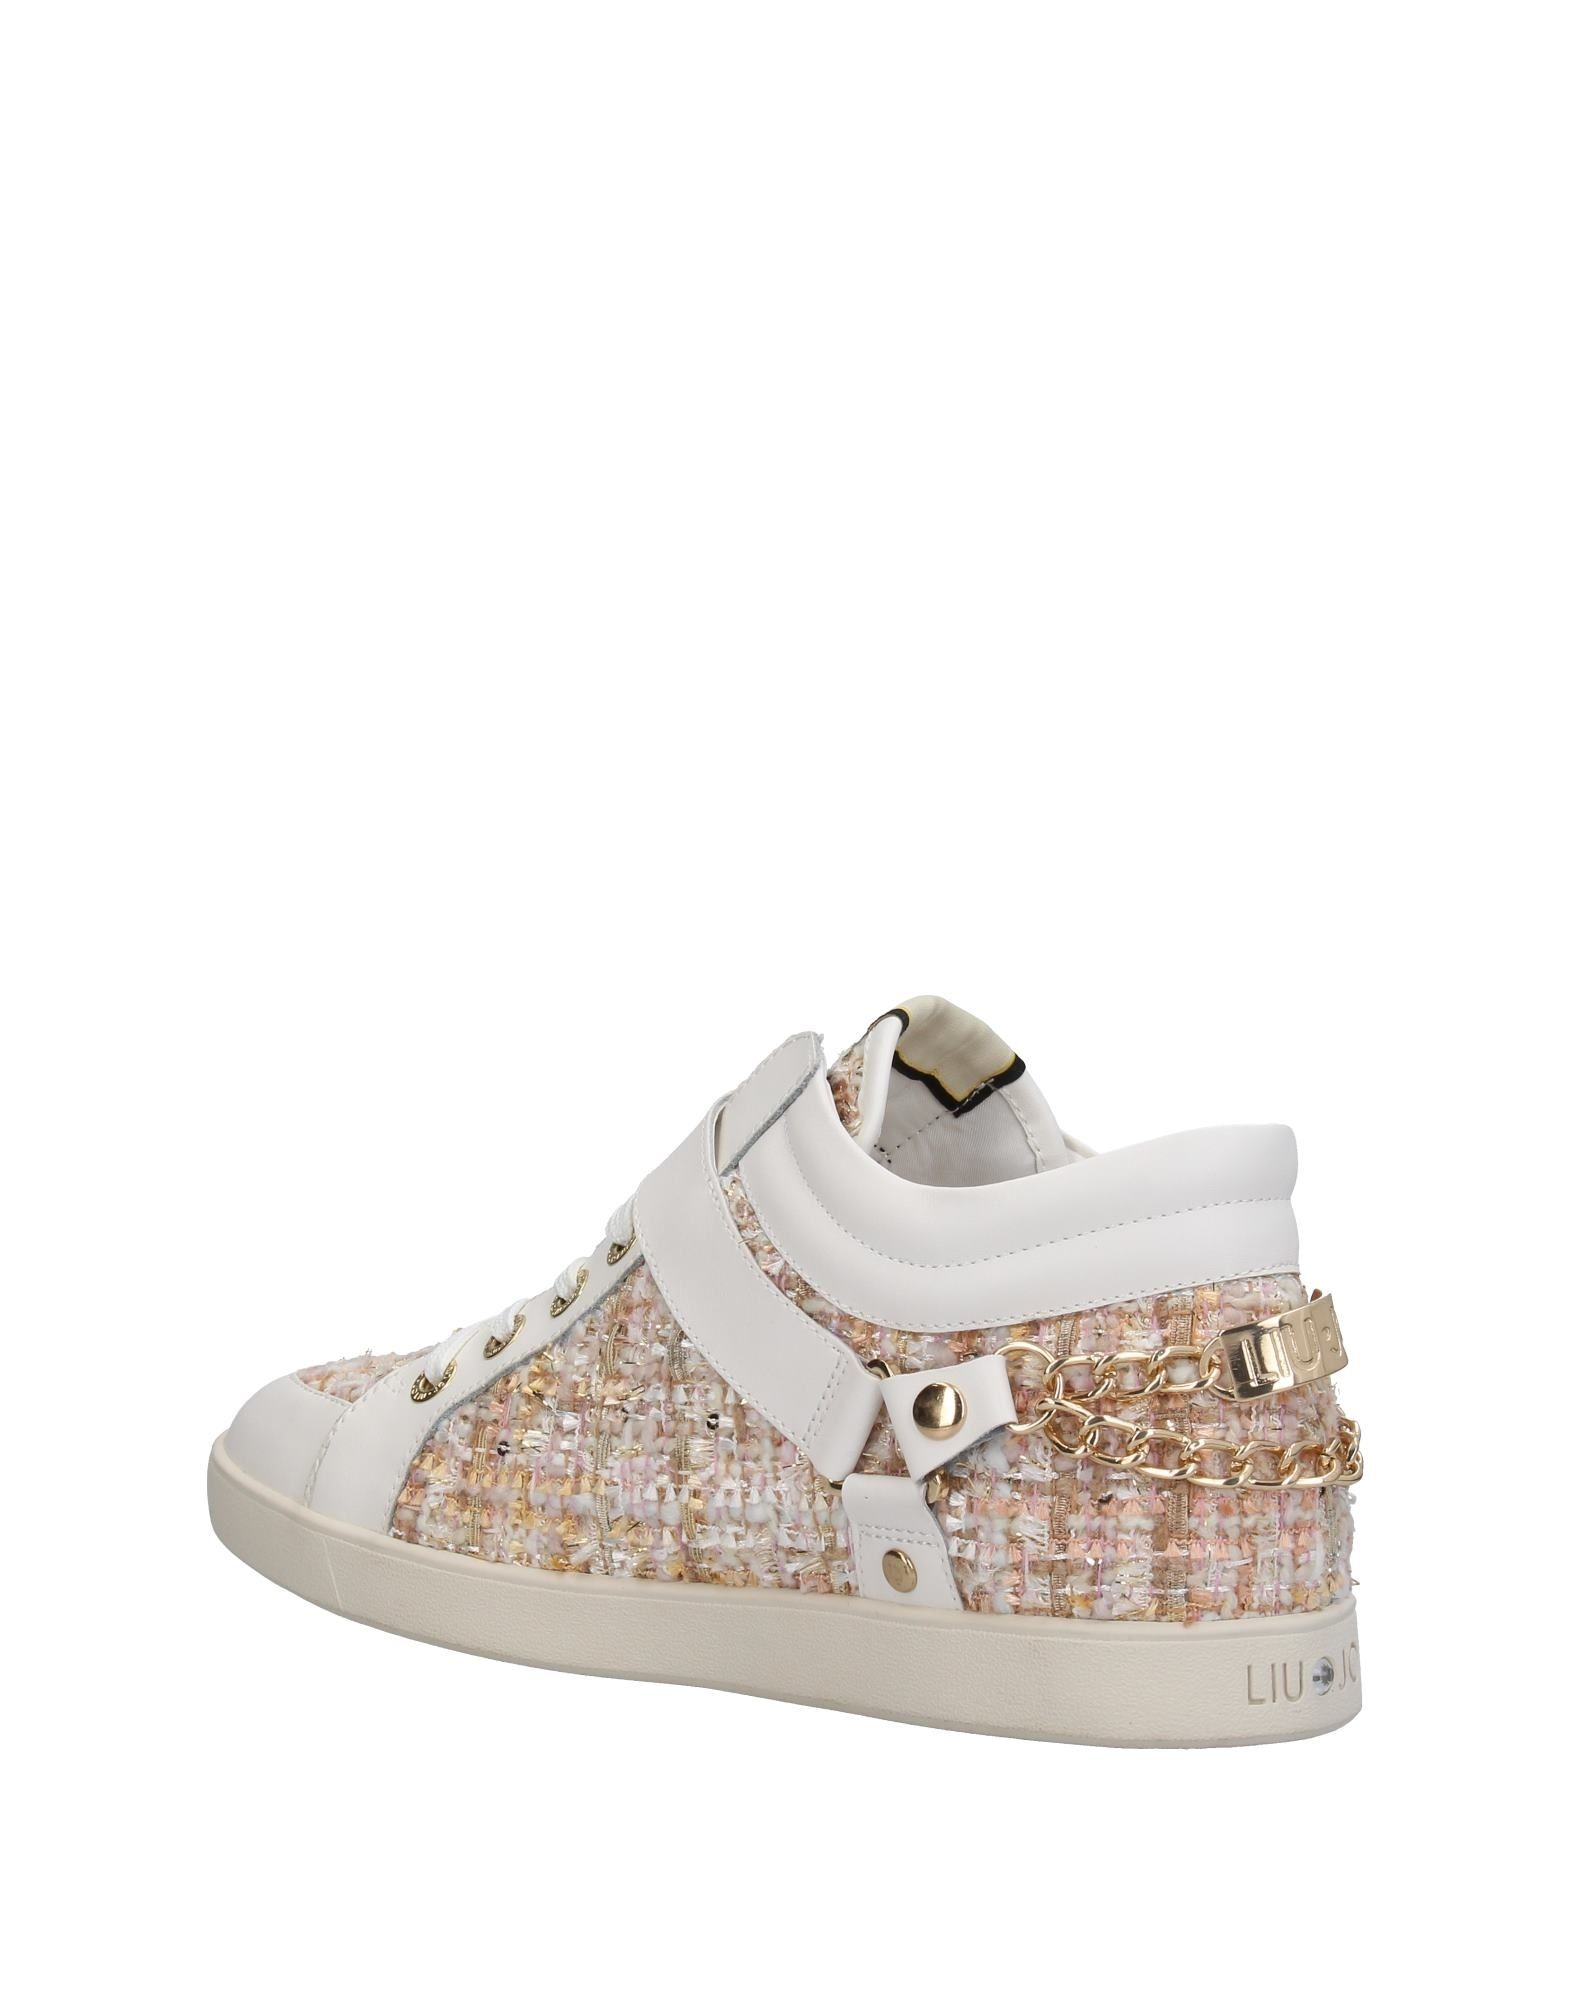 Liu •Jo Shoes Sneakers Sneakers Sneakers - Women Liu •Jo Shoes Sneakers online on  Canada - 11370130WV e1b0fb